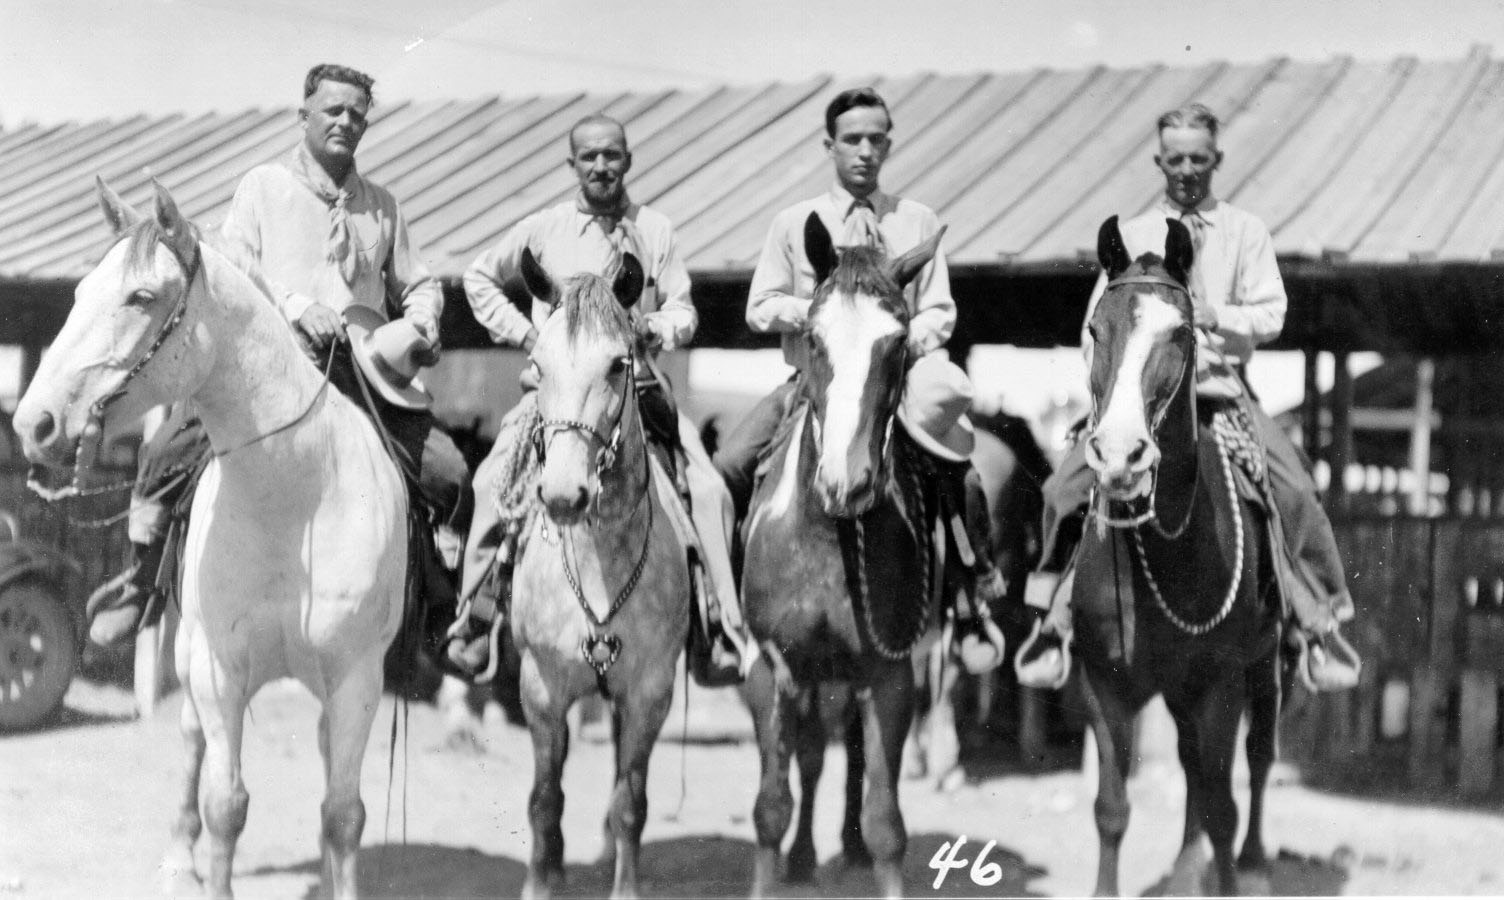 Black-and-white photo of four men on horseback.